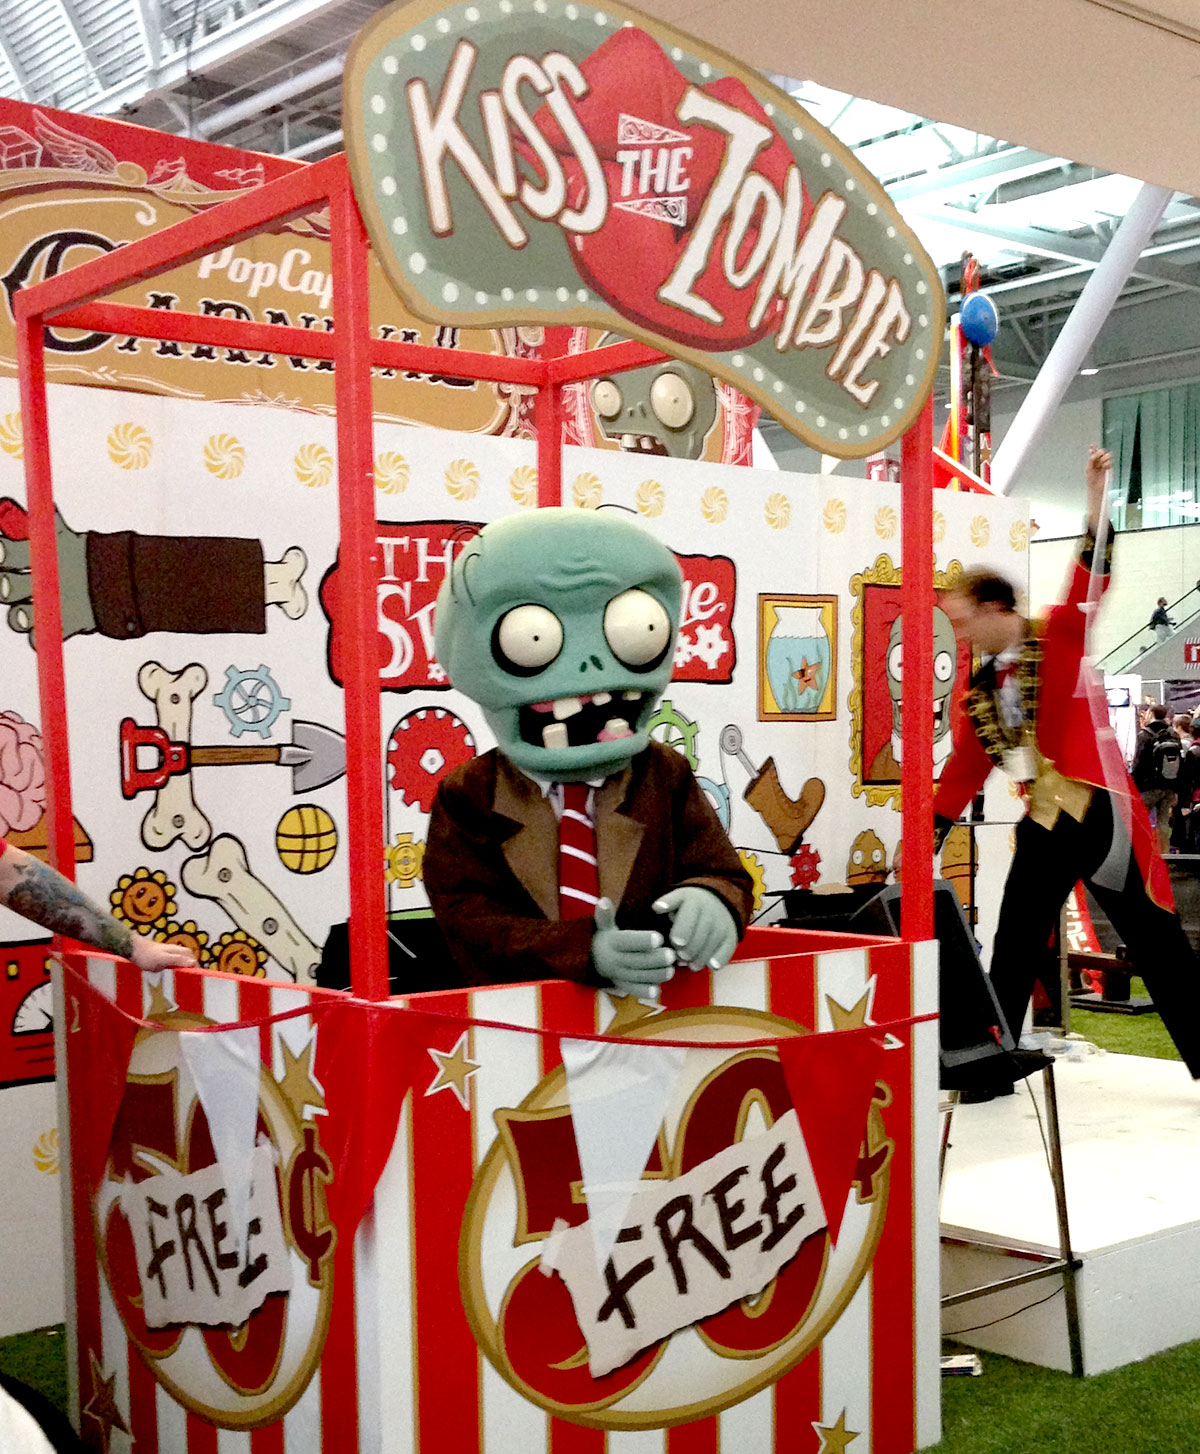 Popcap had a fun booth.